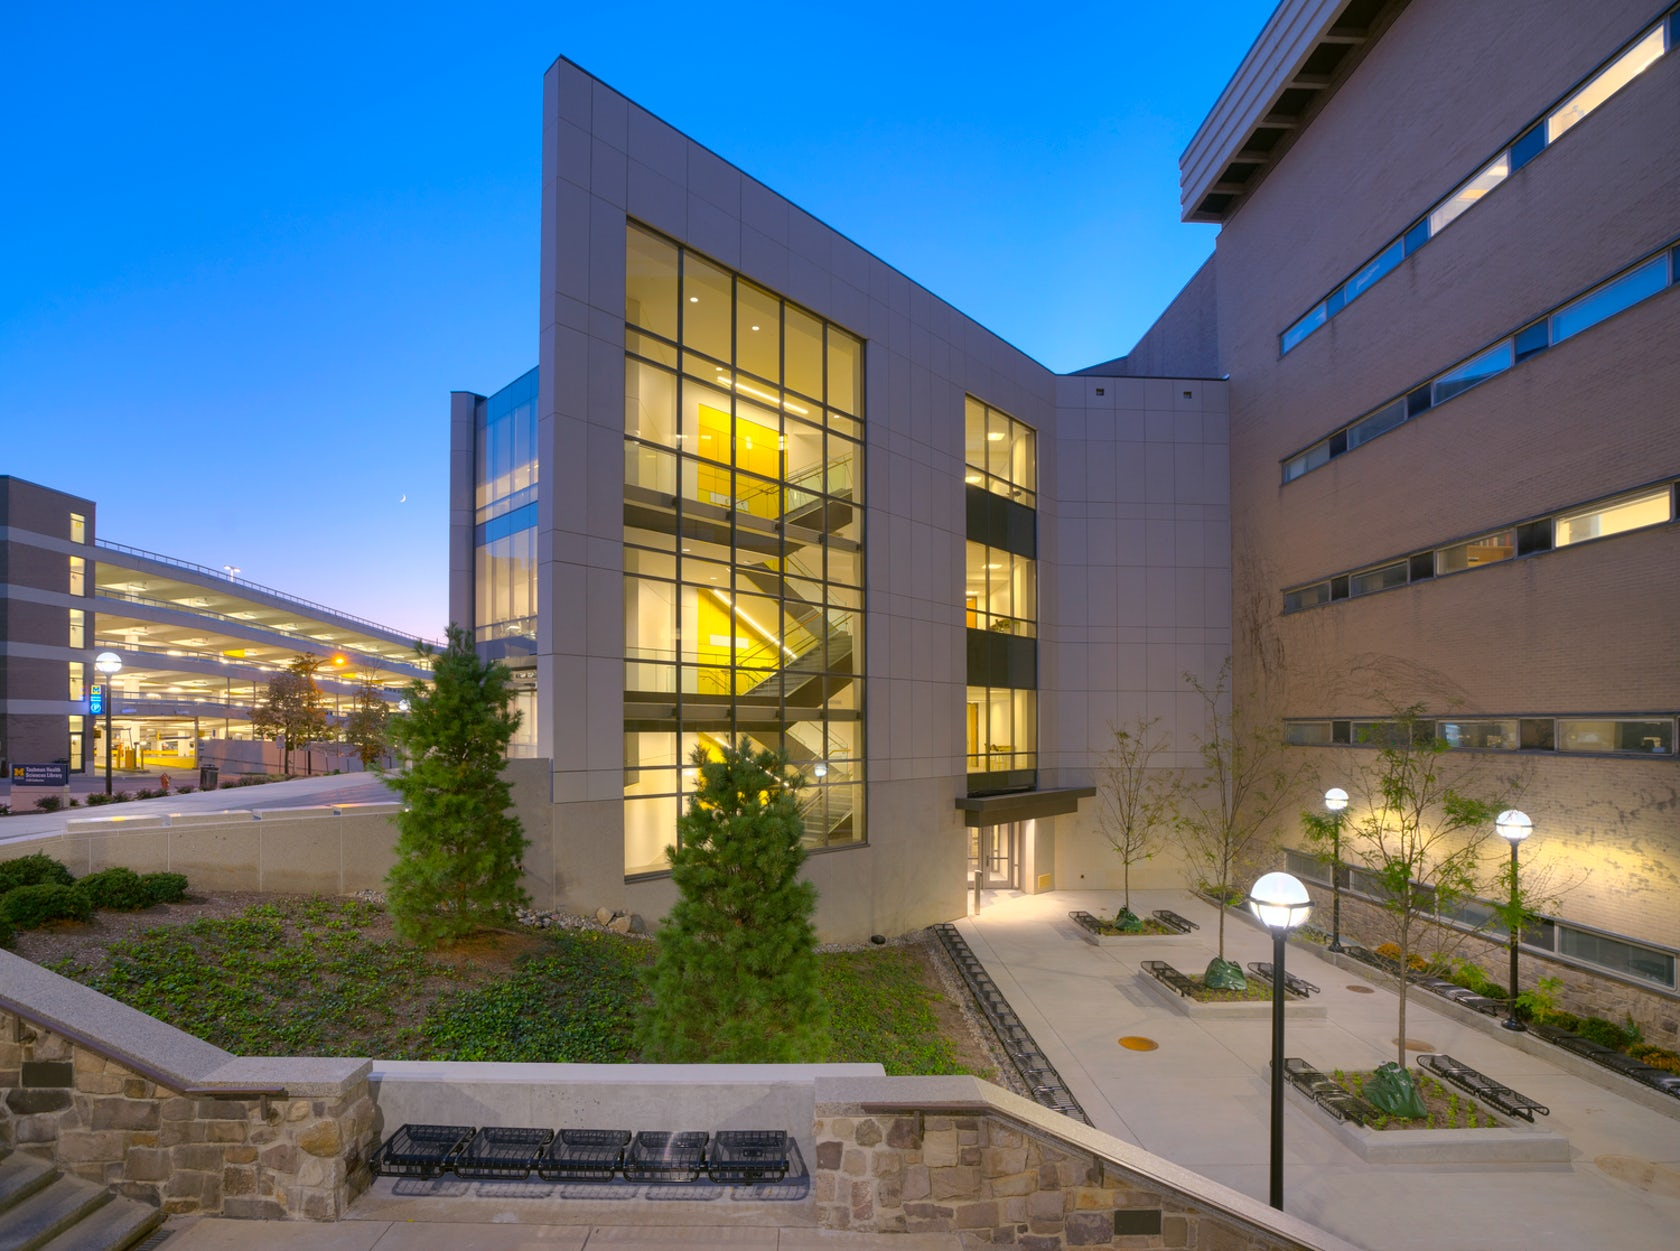 University of Michigan, A  Alfred Taubman Health Sciences